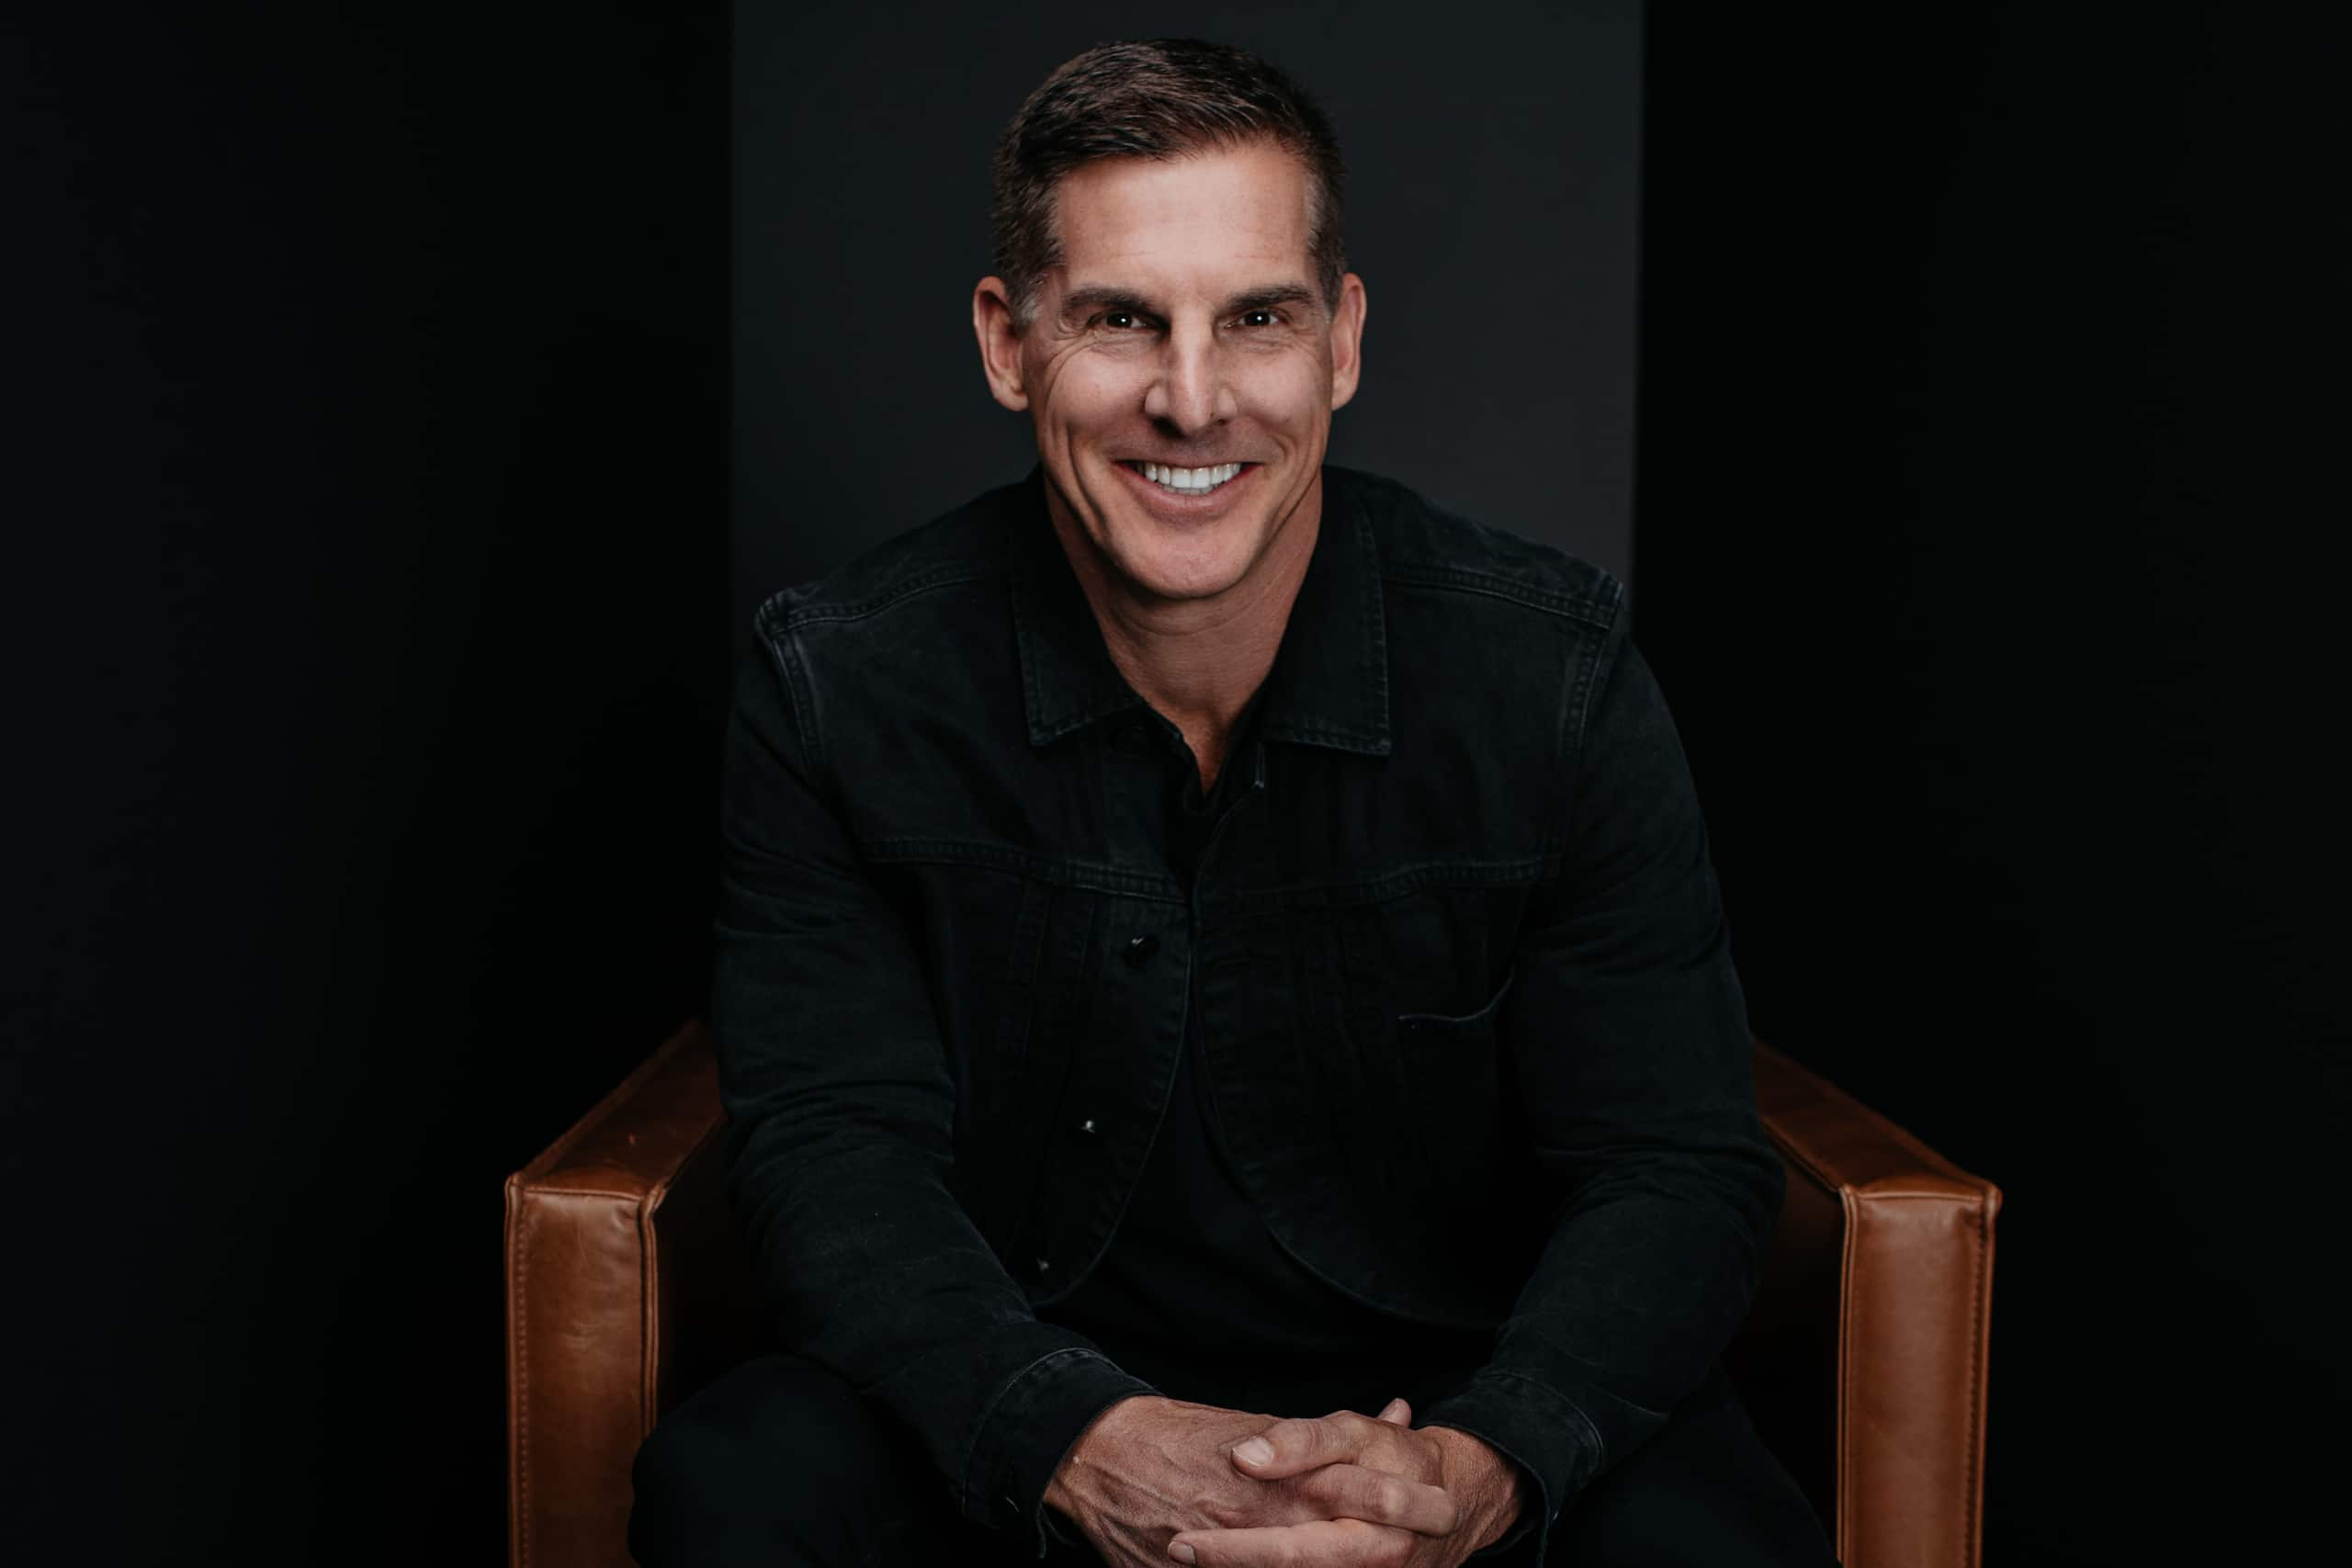 CNLP 319: Craig Groeschel on What He's Learning from His Performance Coach, How to Handle High Demand Leadership, and How to Avoid Entitlement in Leadership